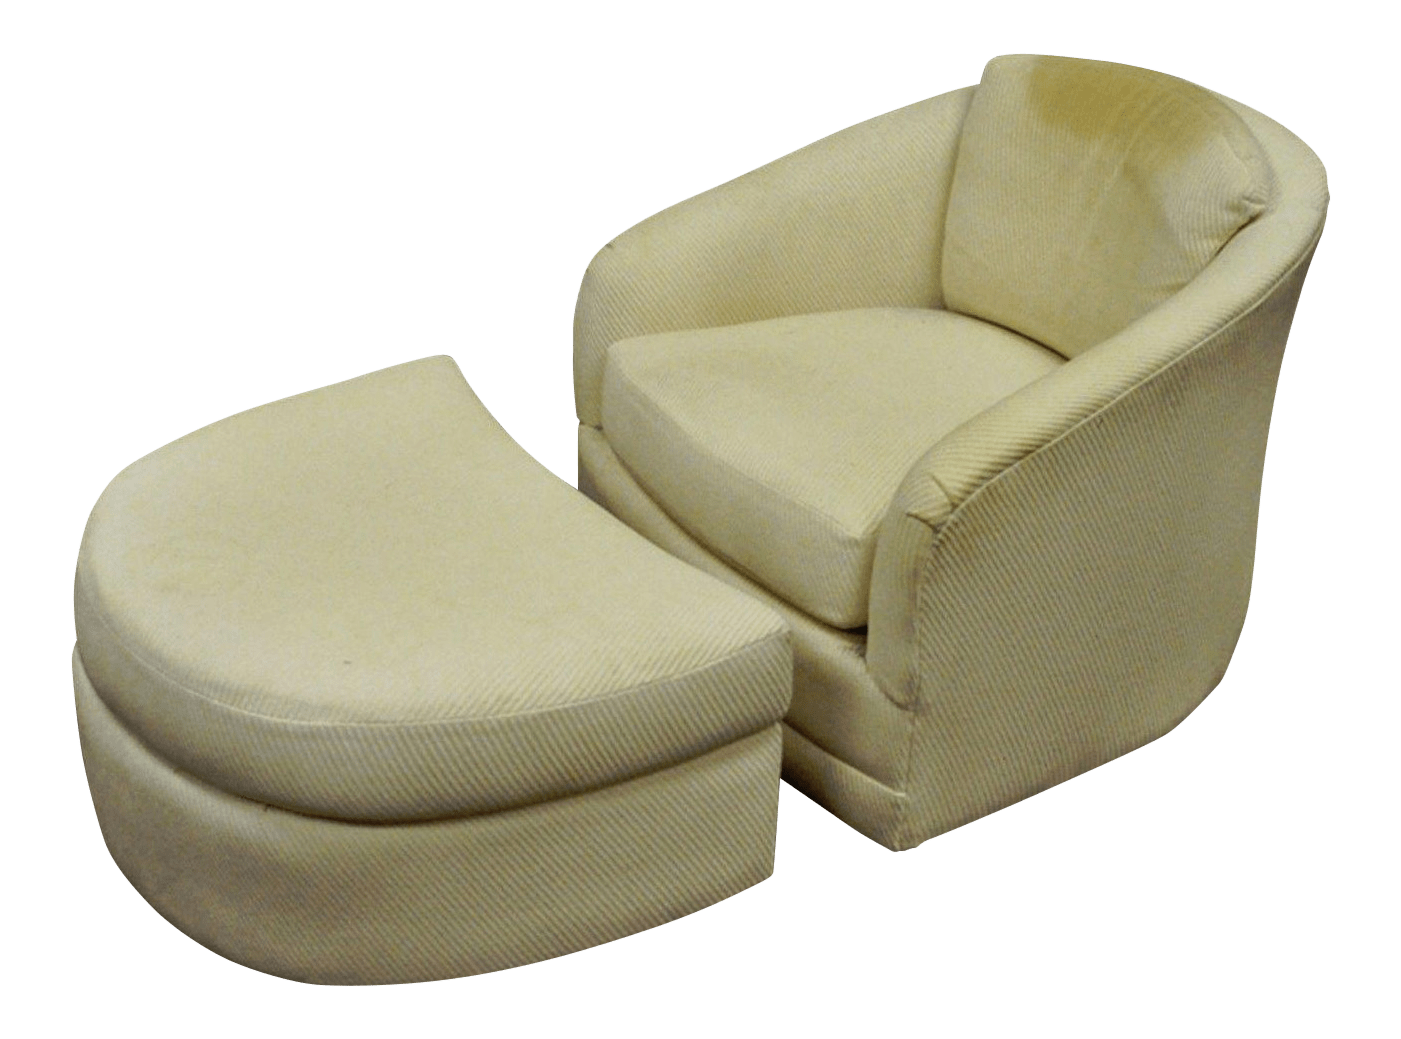 swivel club chair with ottoman plastic stack chairs vintage maurice villency mid century modern lounge for sale